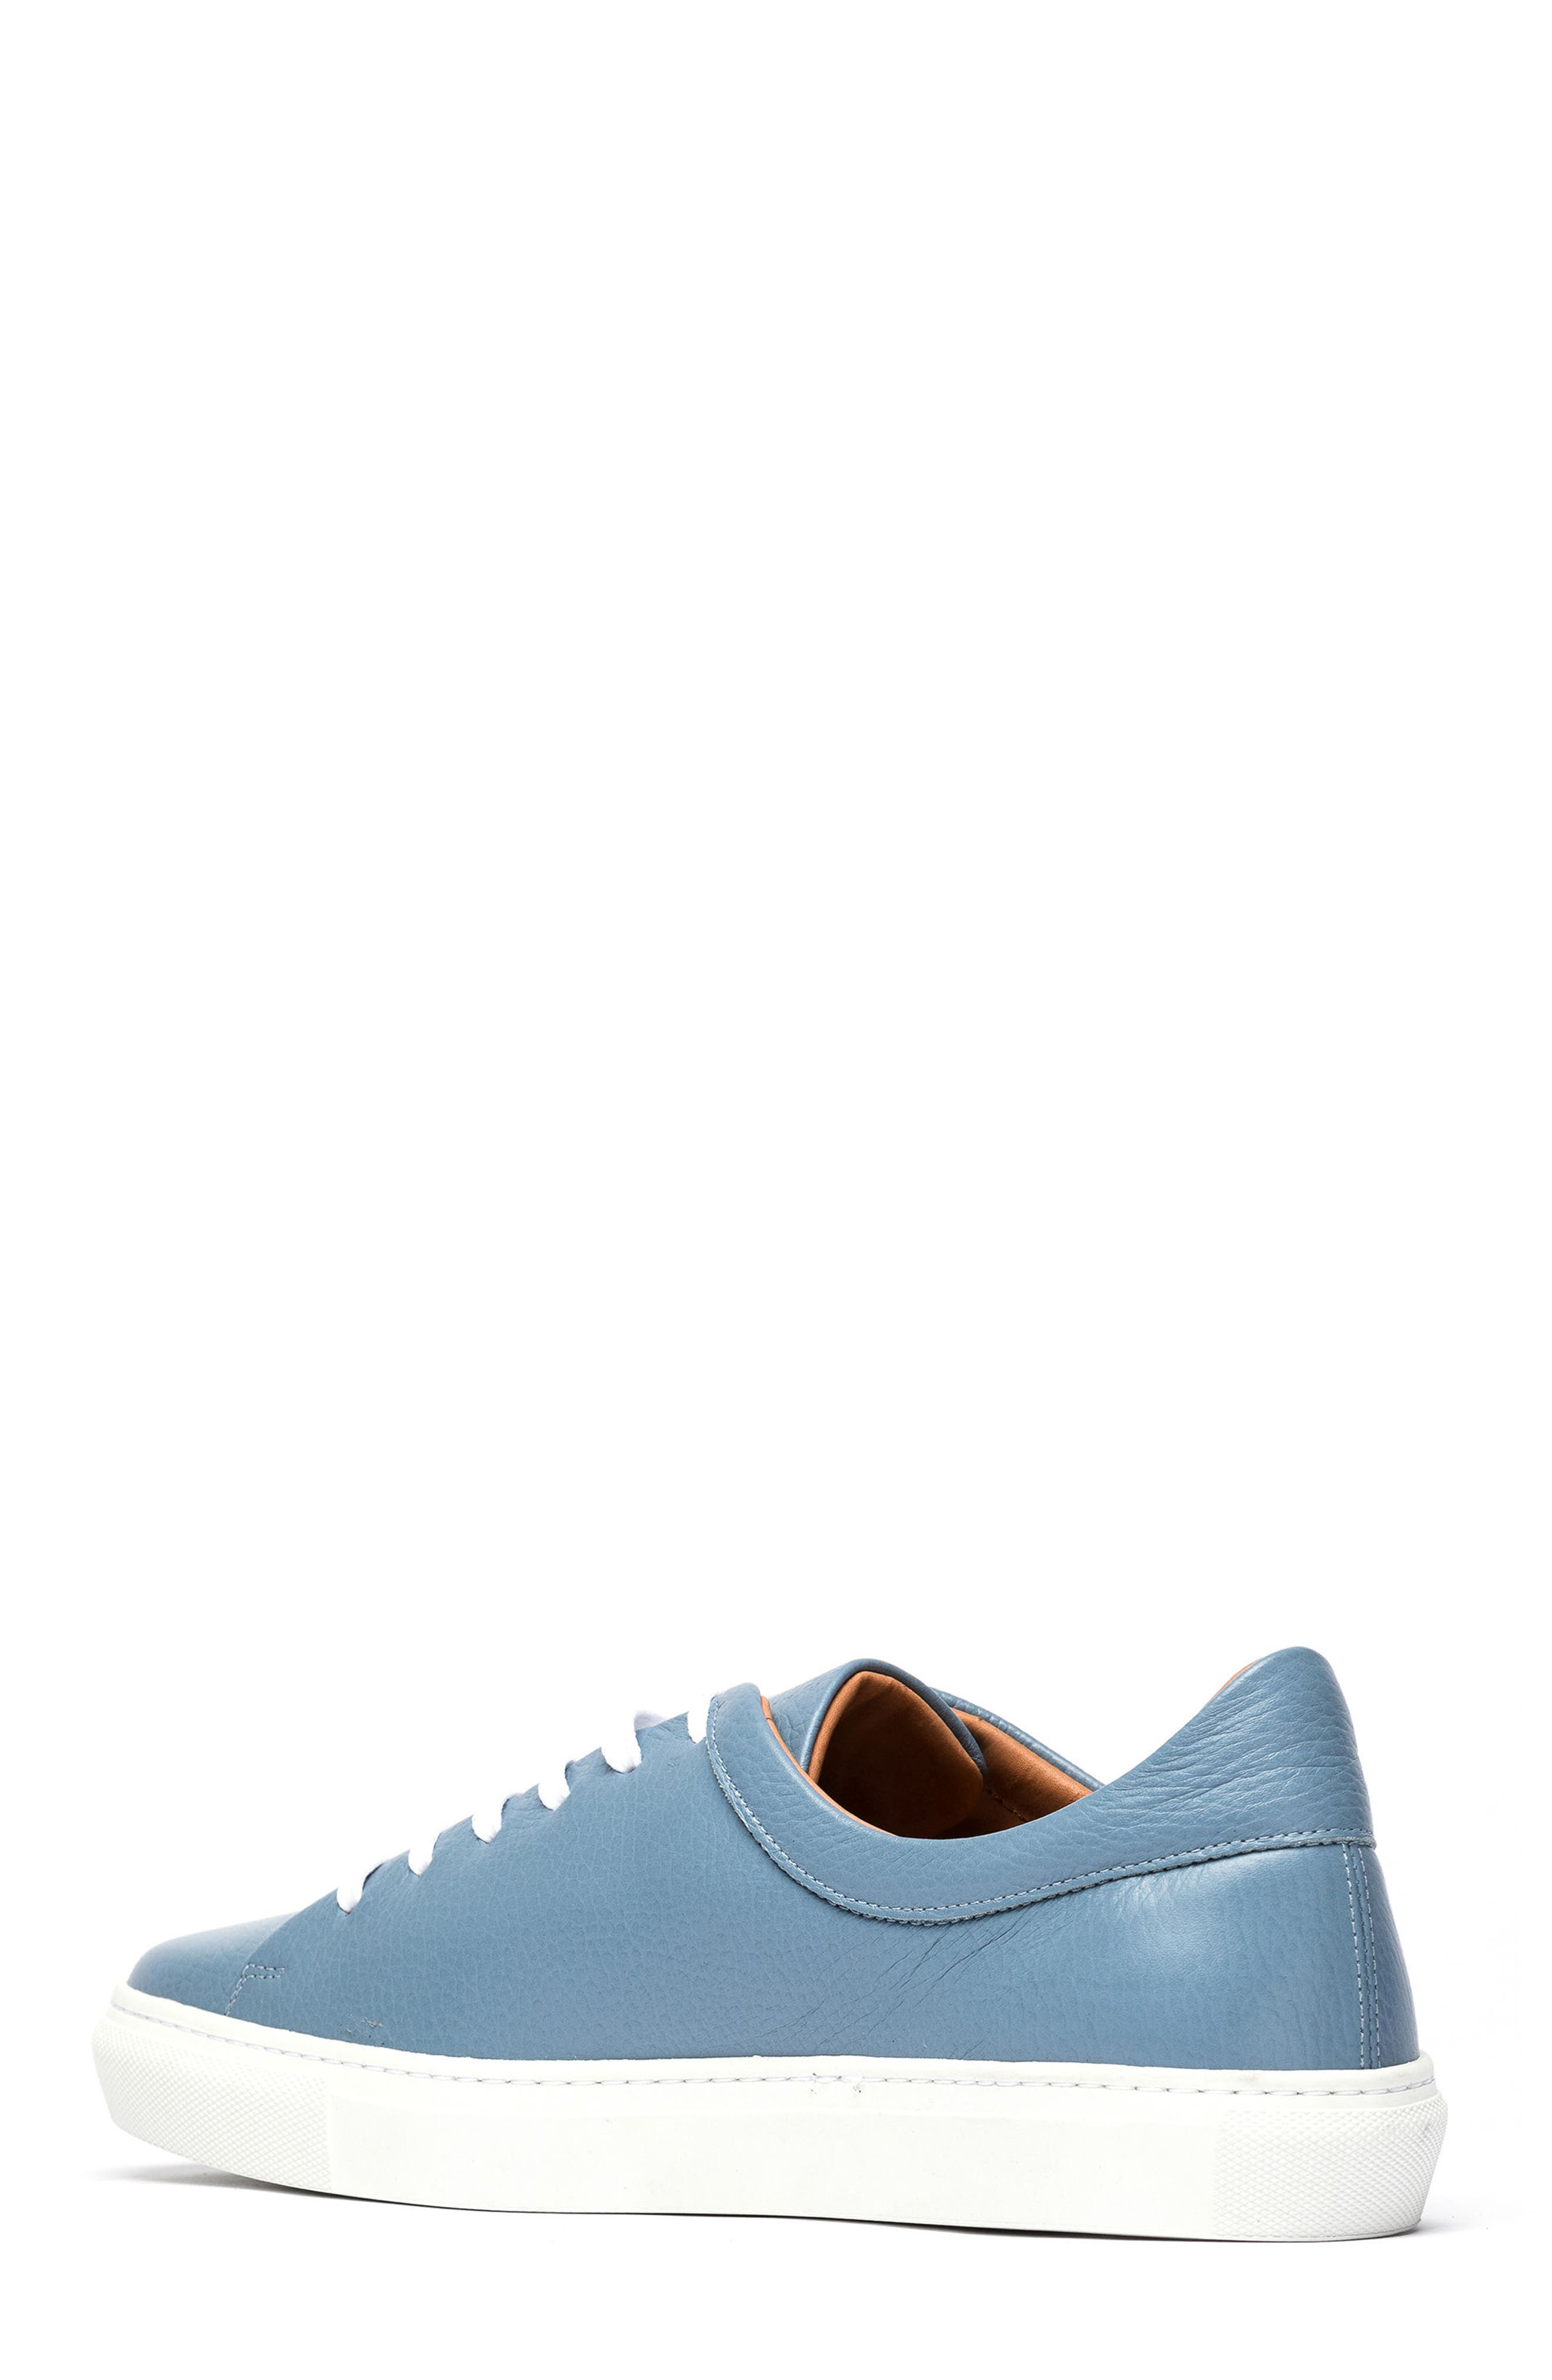 Windemere Sneaker,                             Alternate thumbnail 2, color,                             Sky Blue Leather